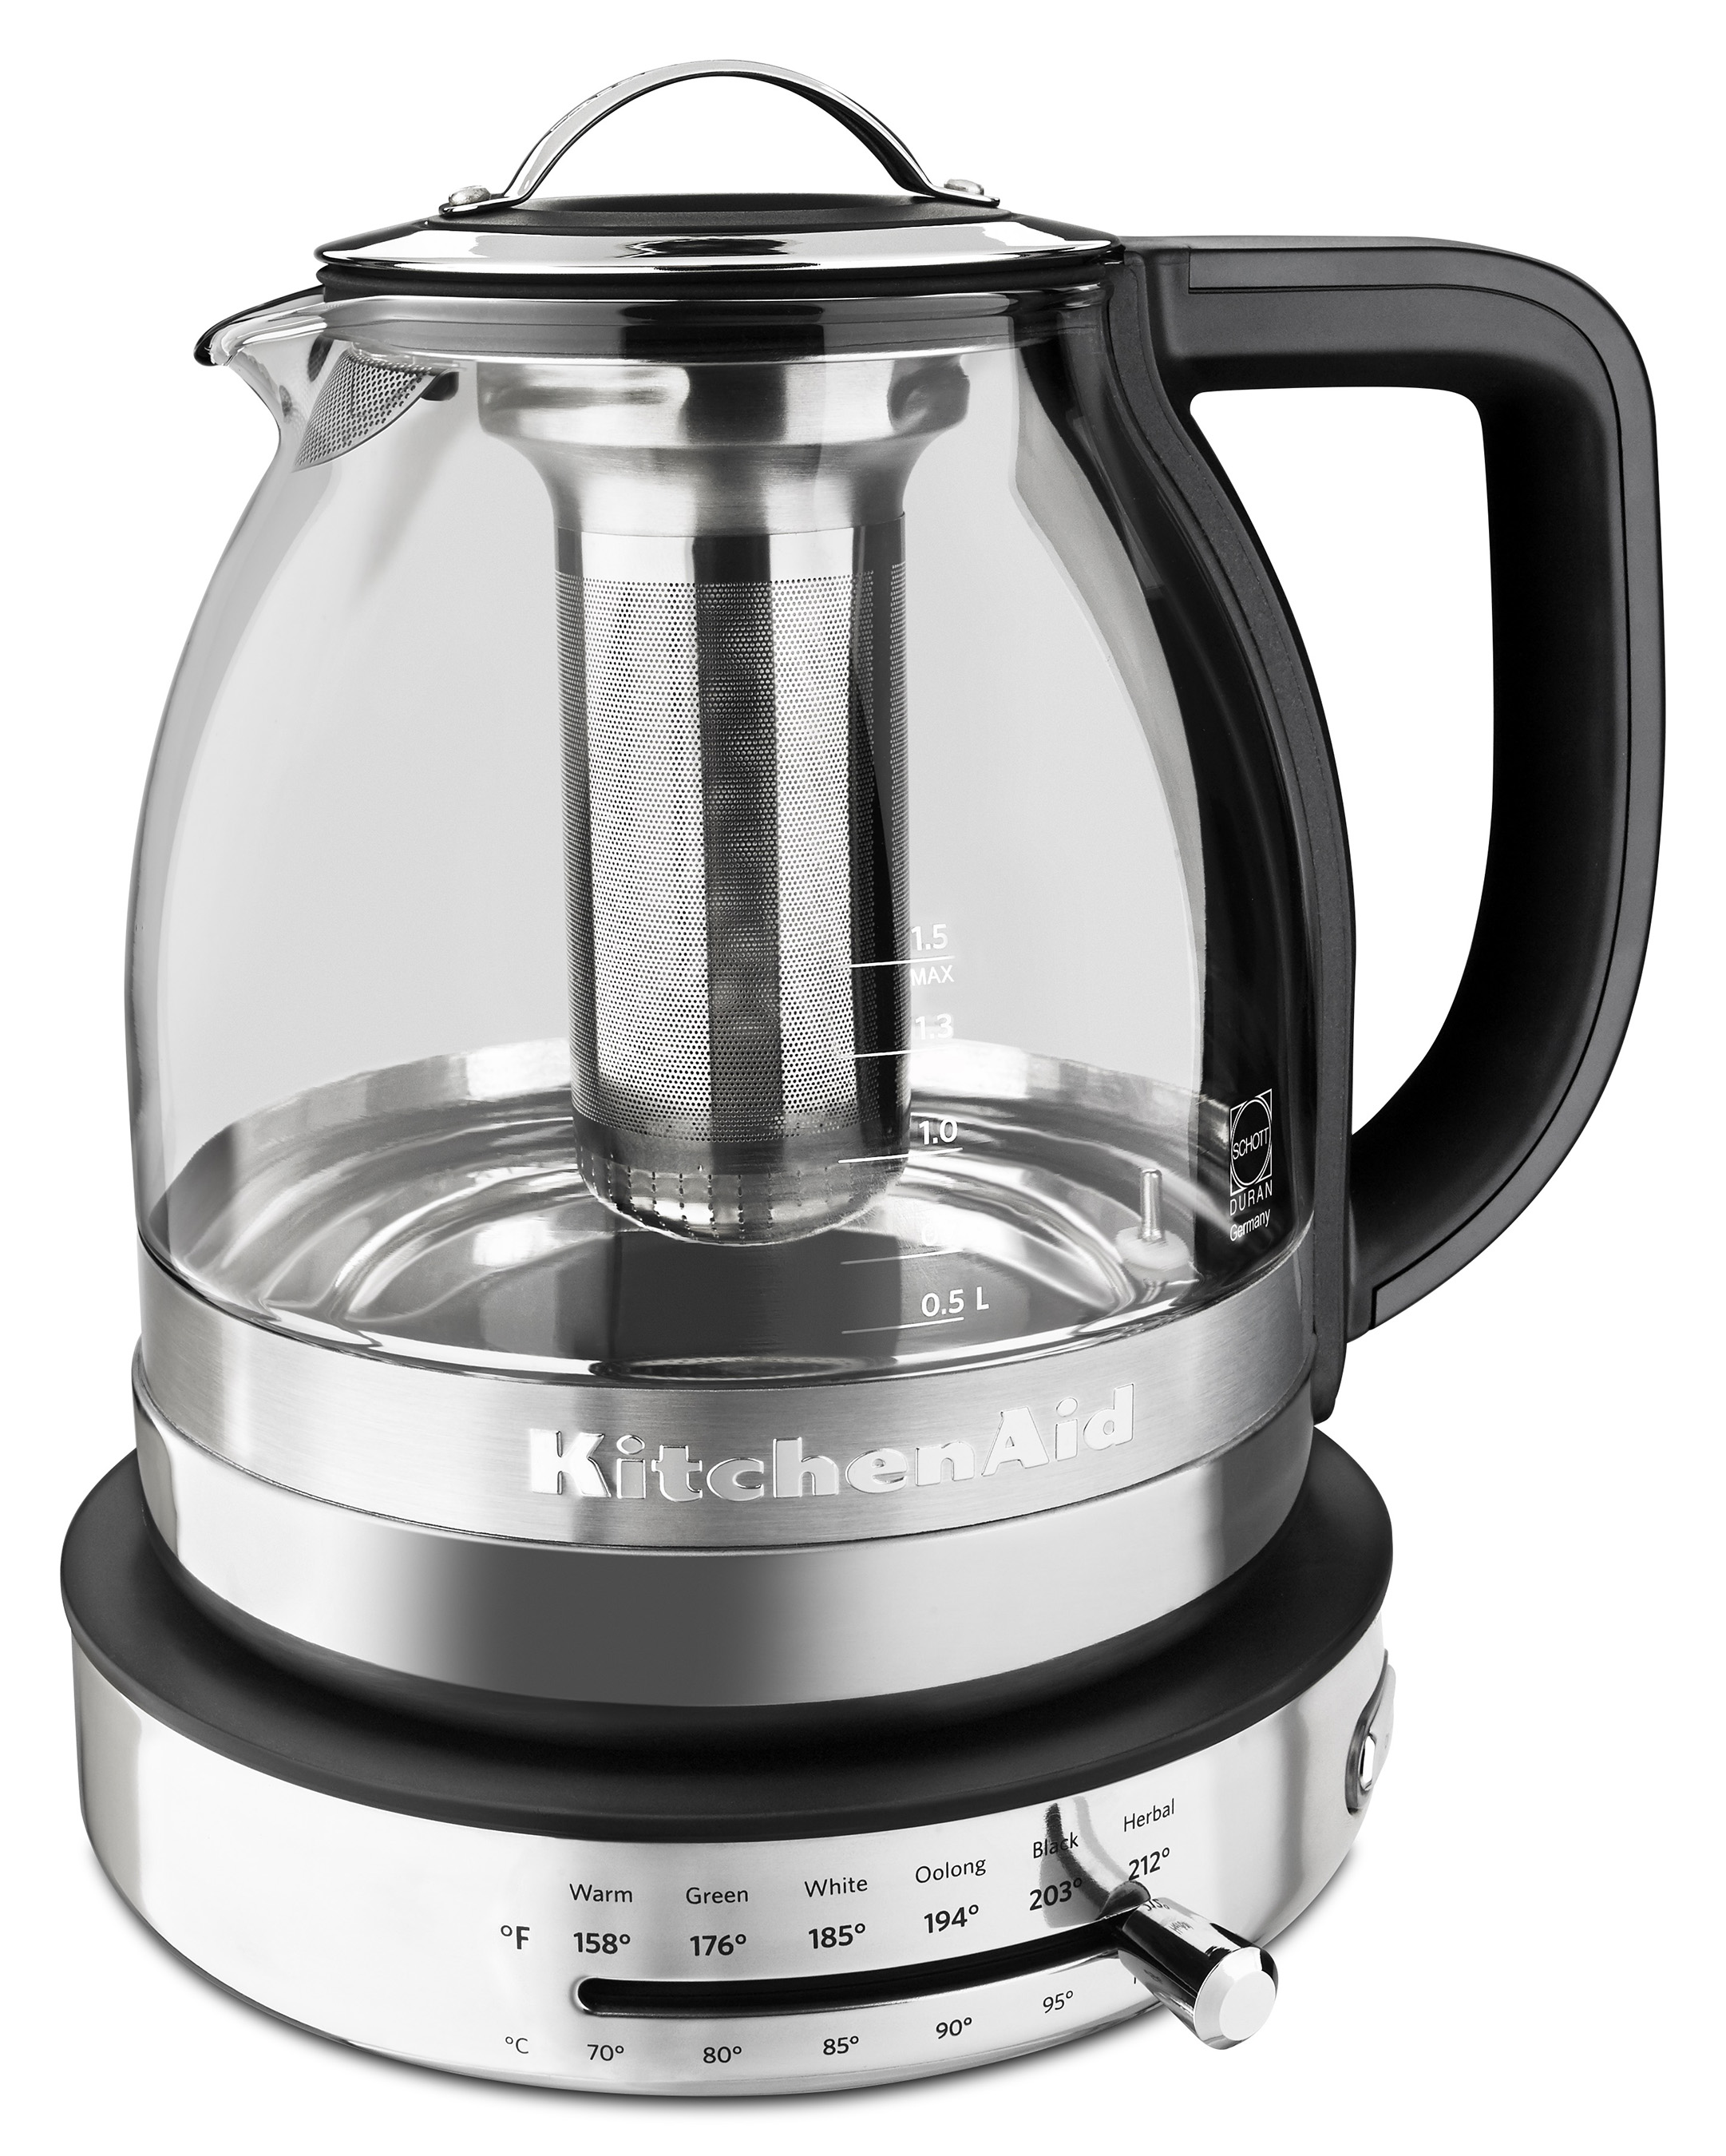 the-new-kitchenaid-glass-tea-kettle-with-preset-settings-offers-tea-lovers-easy-mastery-of-the-perfect-cup